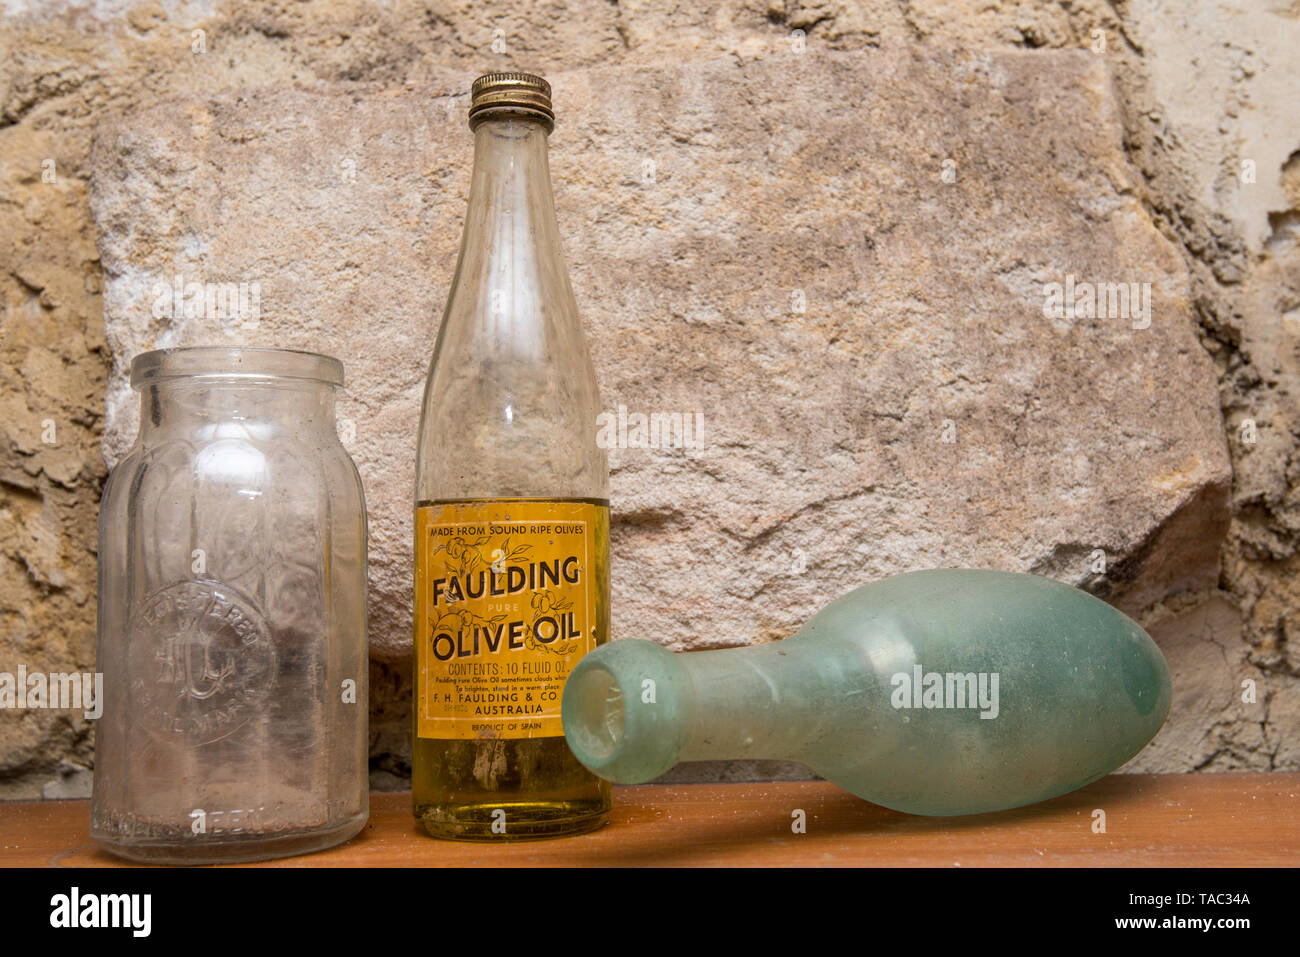 Old Glass Bottles Stock Photos & Old Glass Bottles Stock Images - Alamy